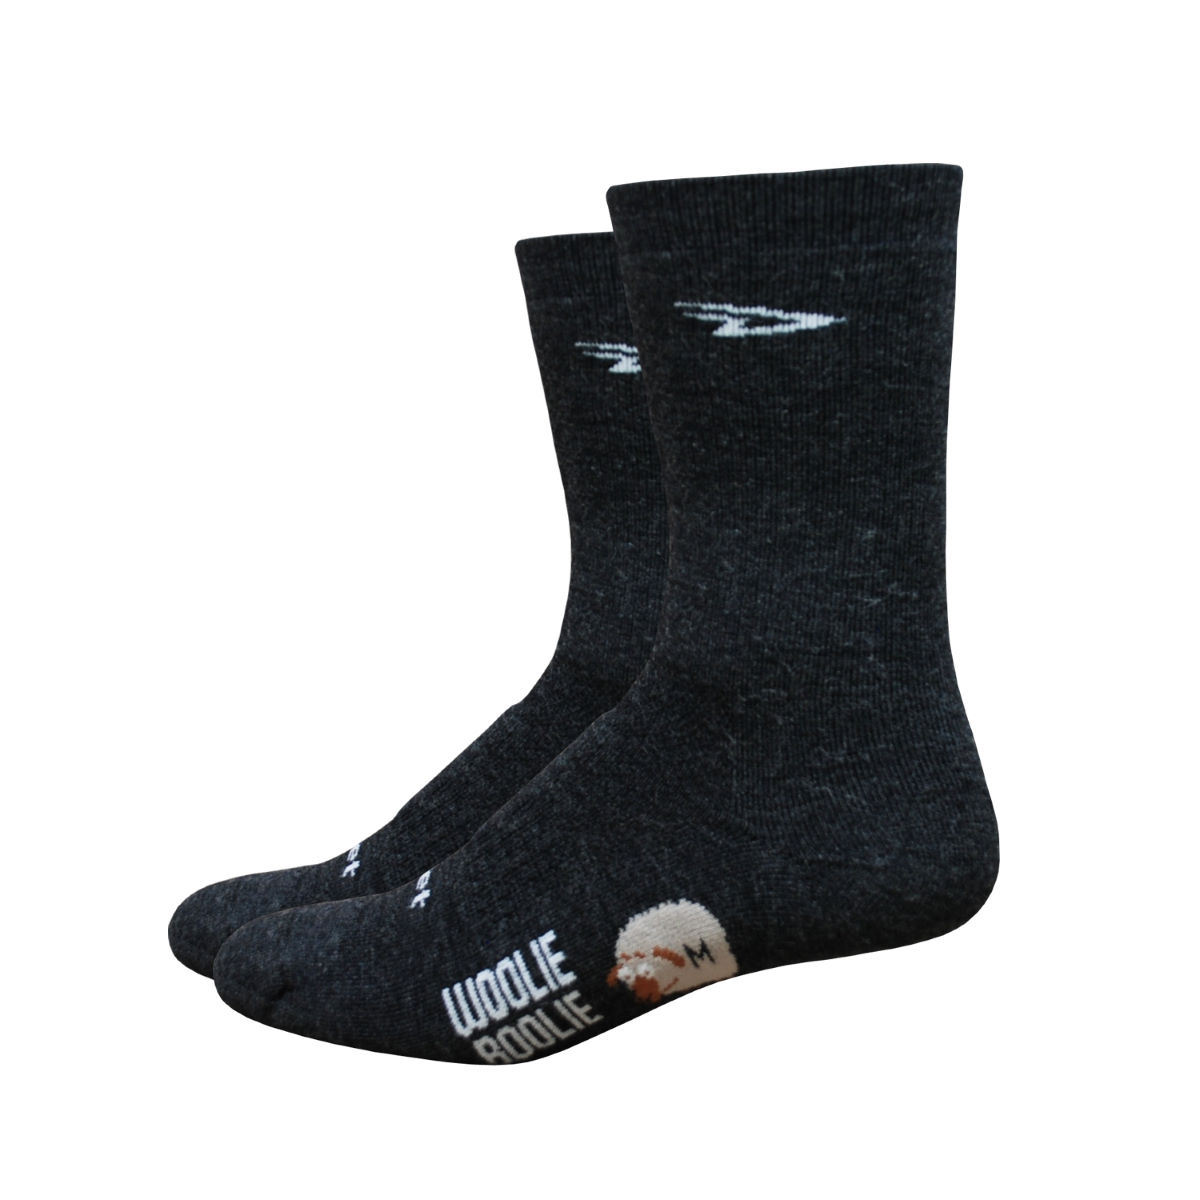 "DeFeet Woolie Boolie 4"" Cuff Cycling Socks"